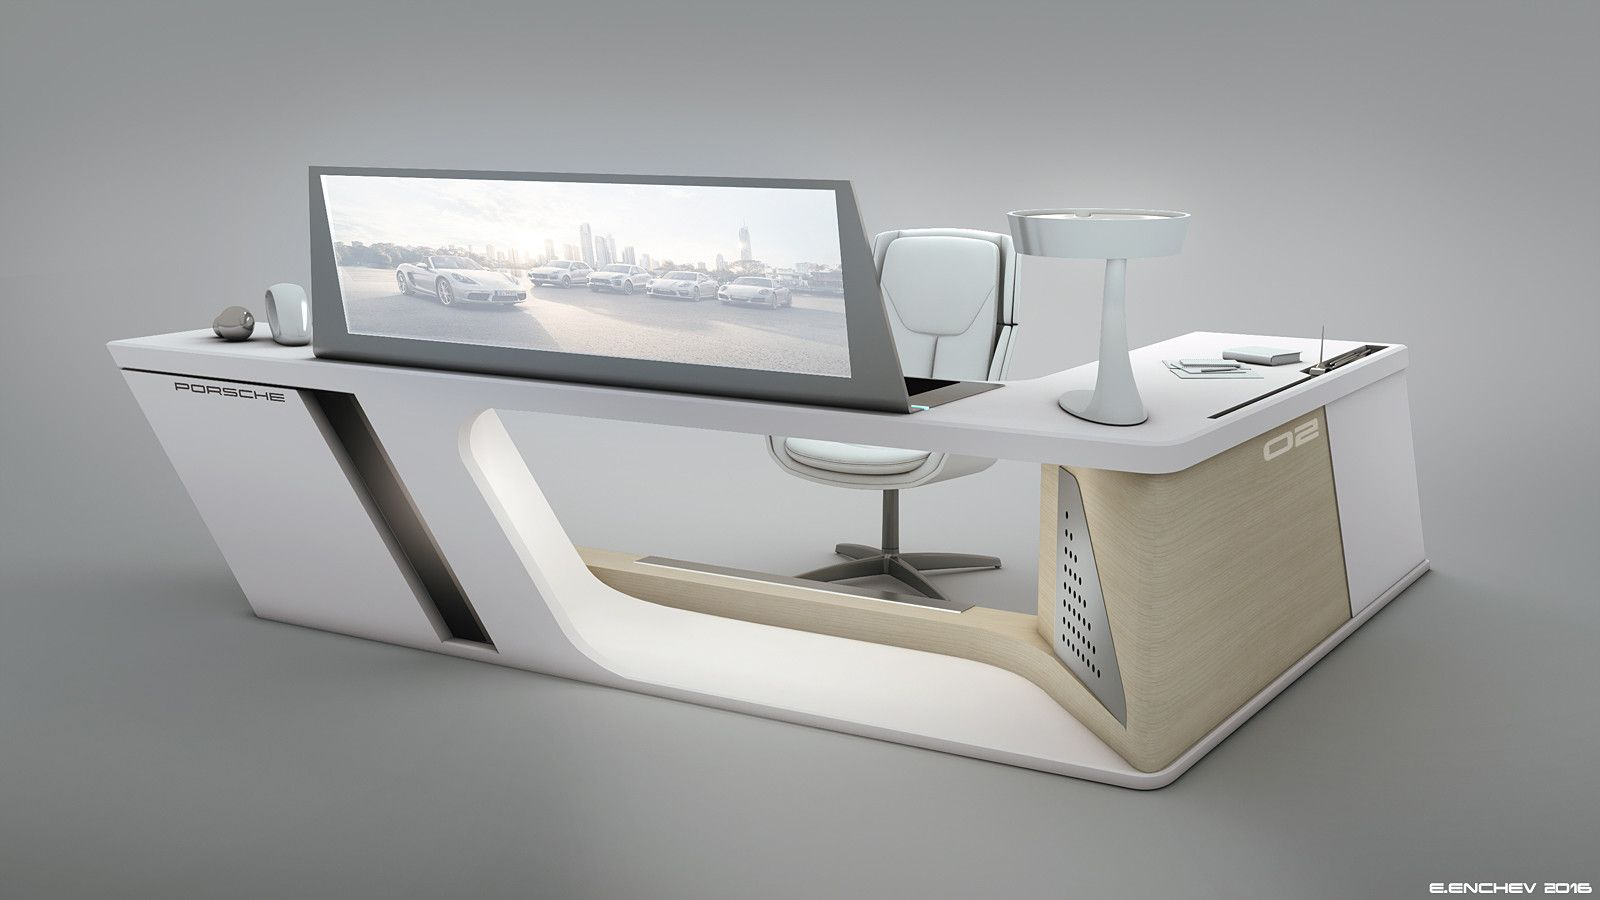 I  decided to create another version of the Porsche desk...this one is bigger and with more storage